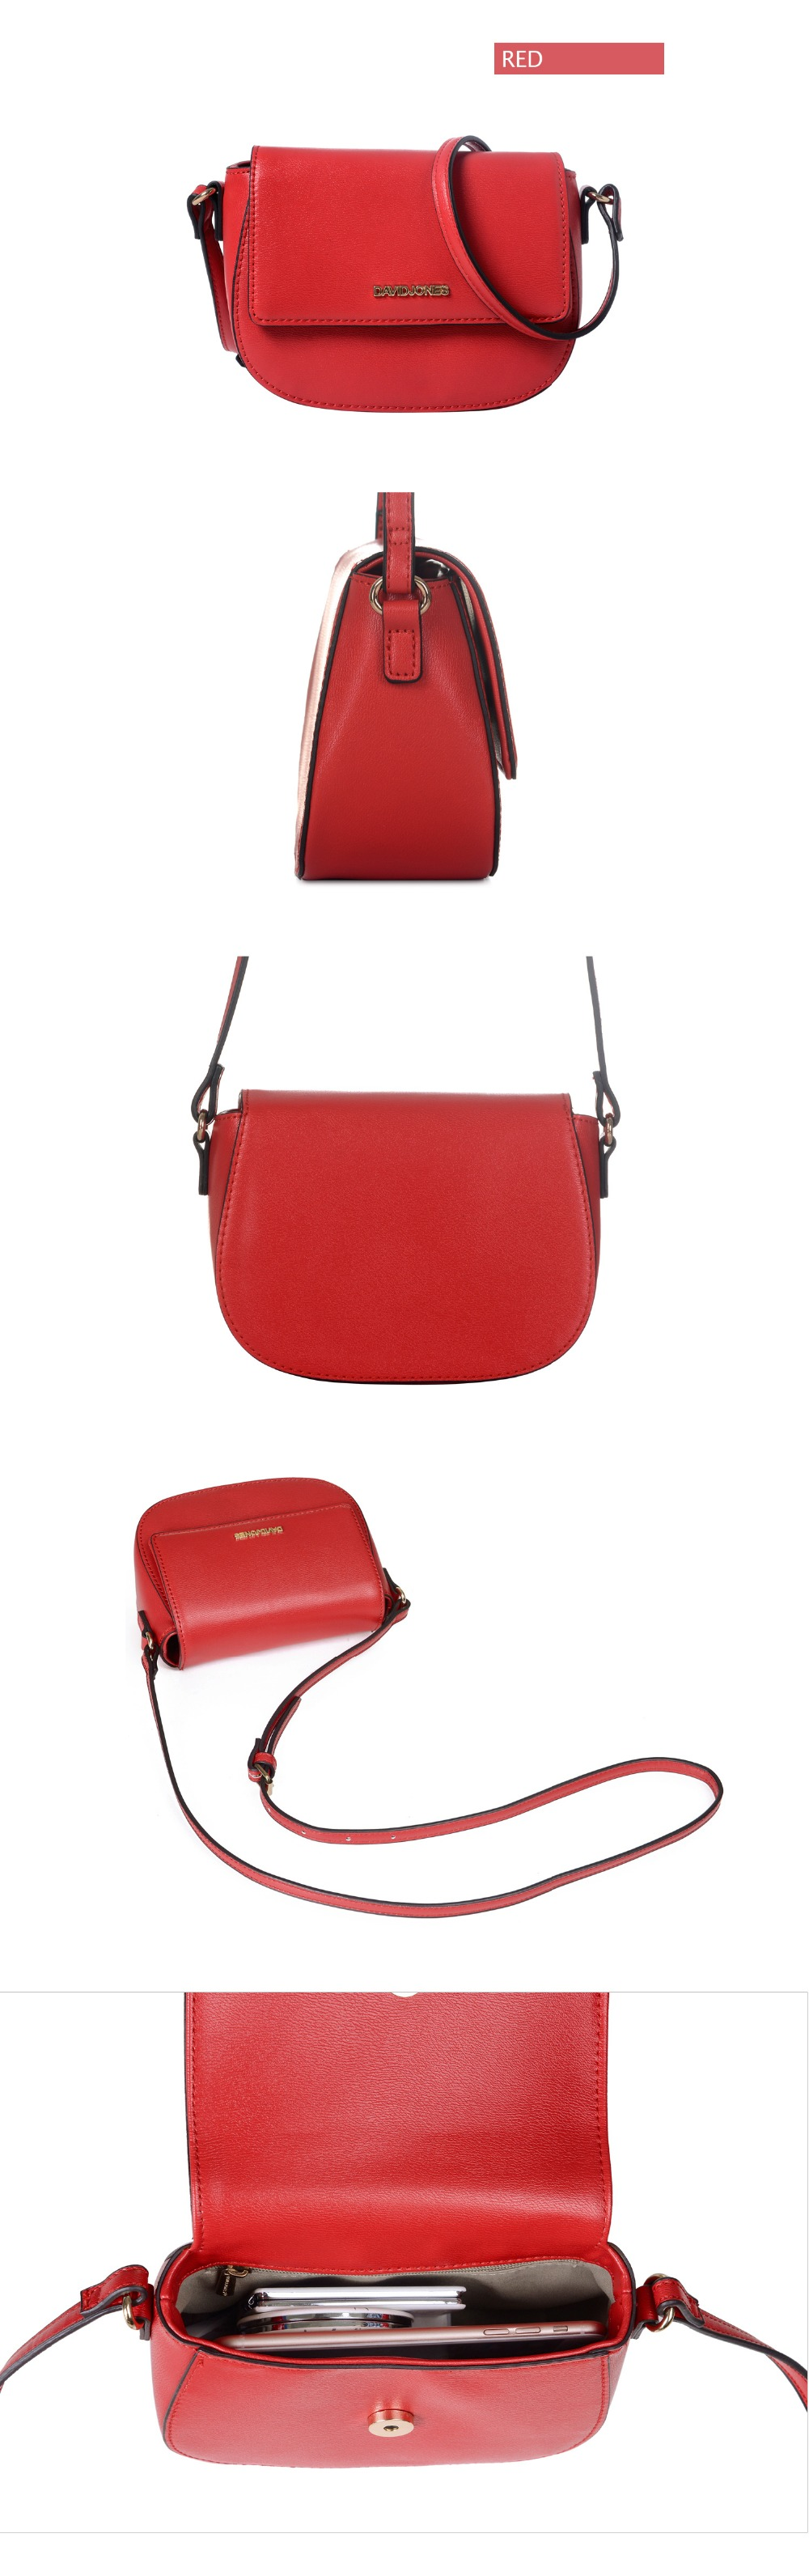 e7128d92f157 DAVIDJONES Women Crossbody Bag Small Messenger Mini Saddle Femal ...